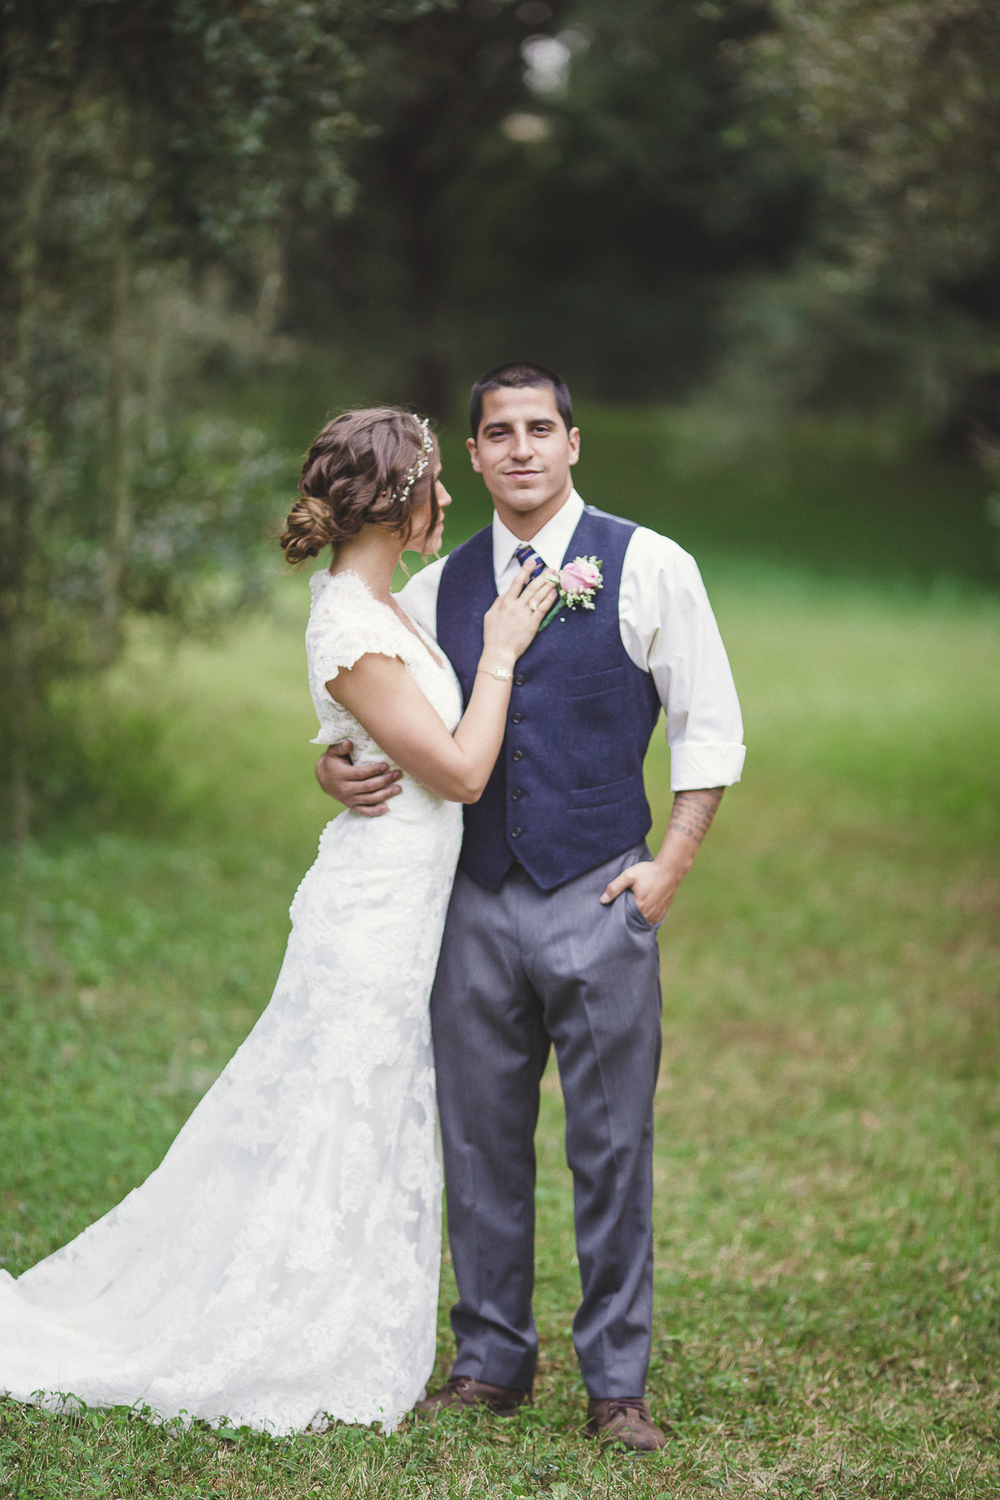 Laurel Gardens Wedding by Christina Maldonado Photography (103 of 143).JPG